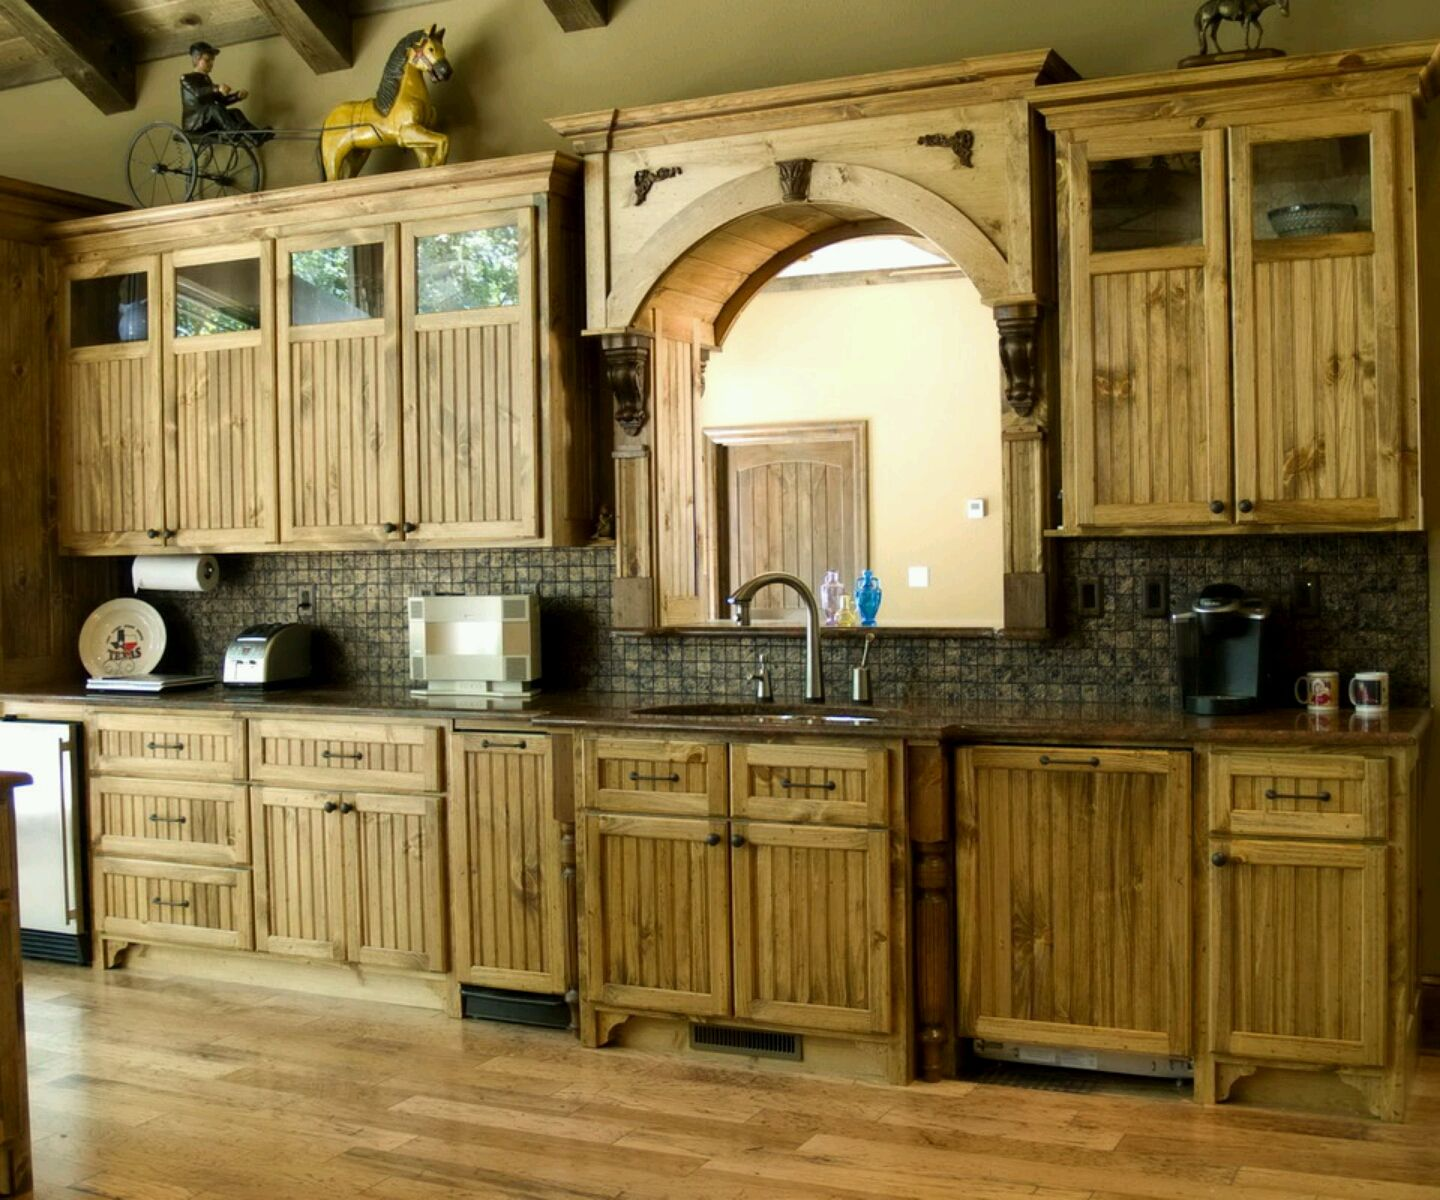 modern wooden kitchen cabinets designs rustic kitchen cabinets wooden kitchen cabinets on a kitchen design id=97725